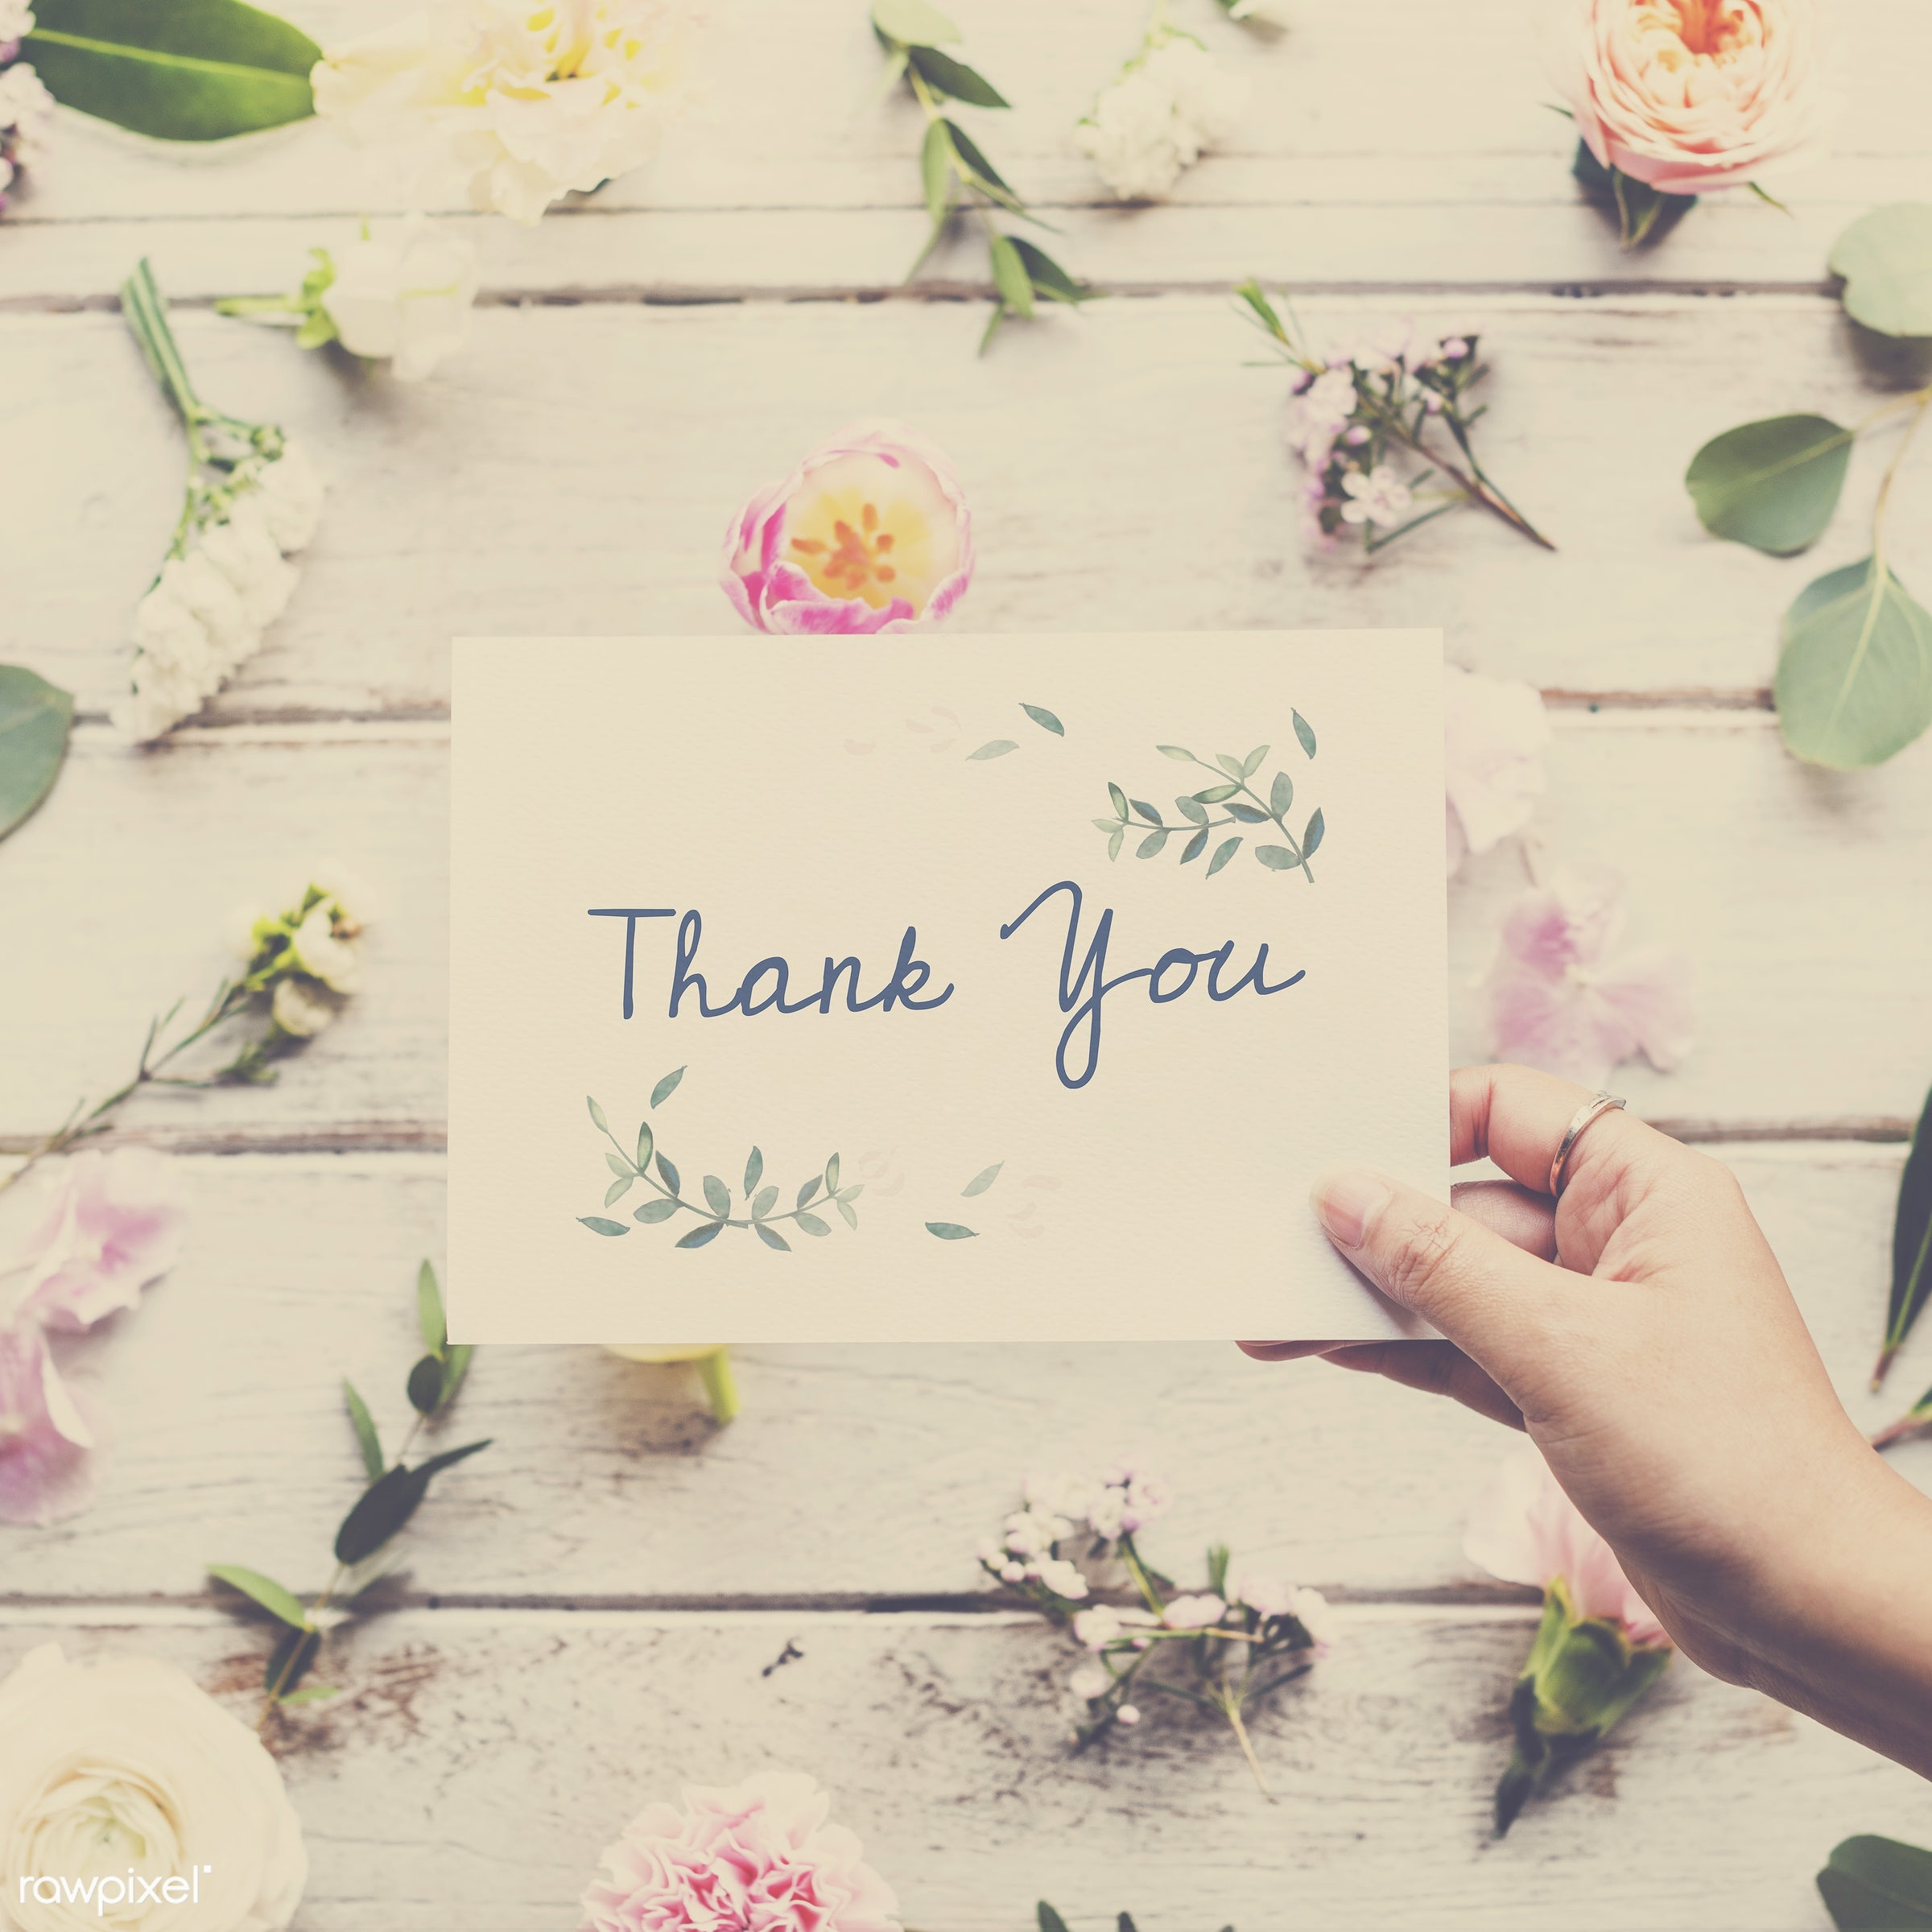 thank you, detail, person, wish, show, people, decor, nature, card, flowers, greeting, hold, refreshment, florist, present,...